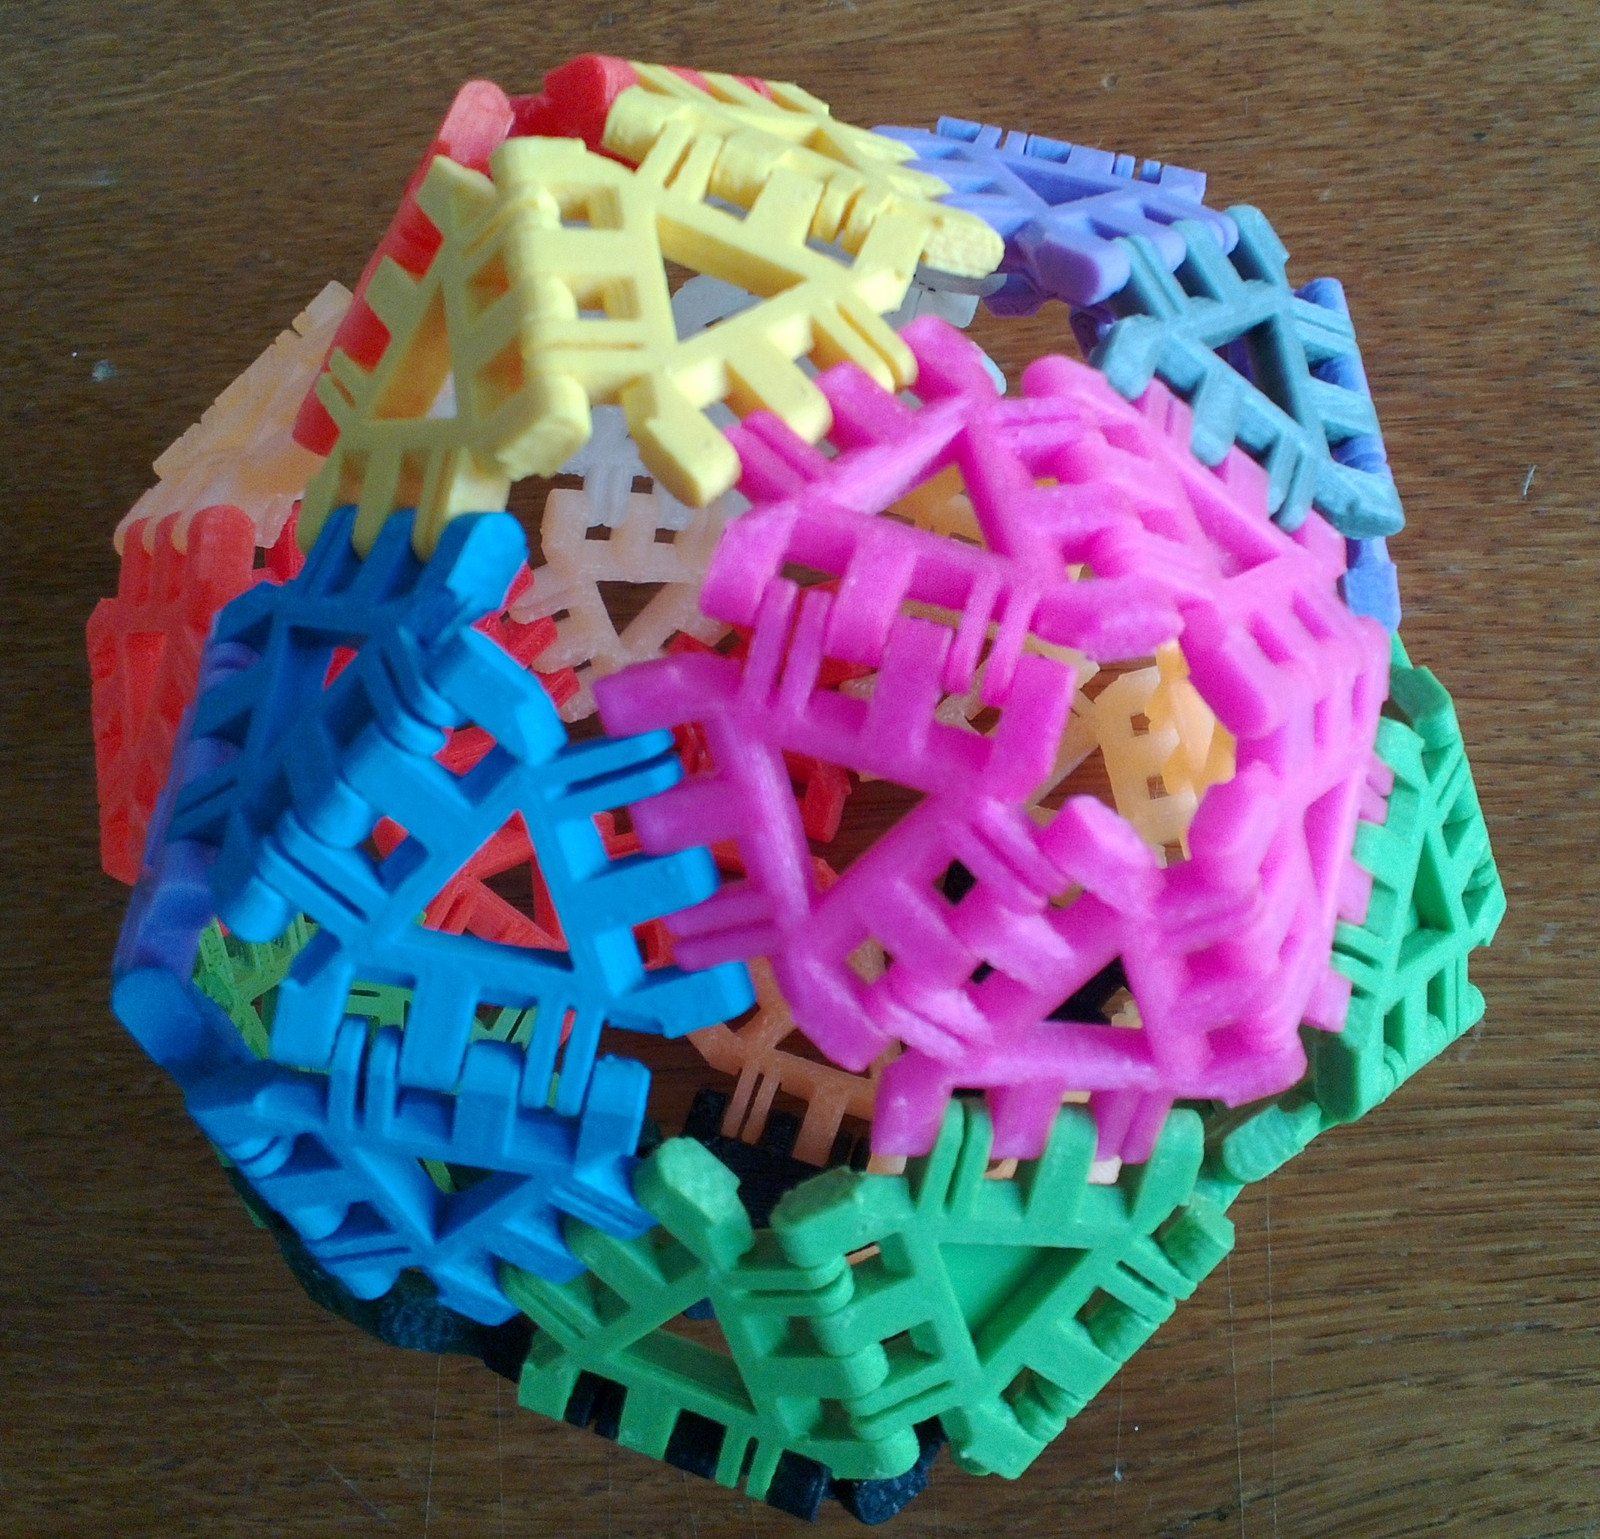 Cover image for article 'Augmented Dodecahedron'